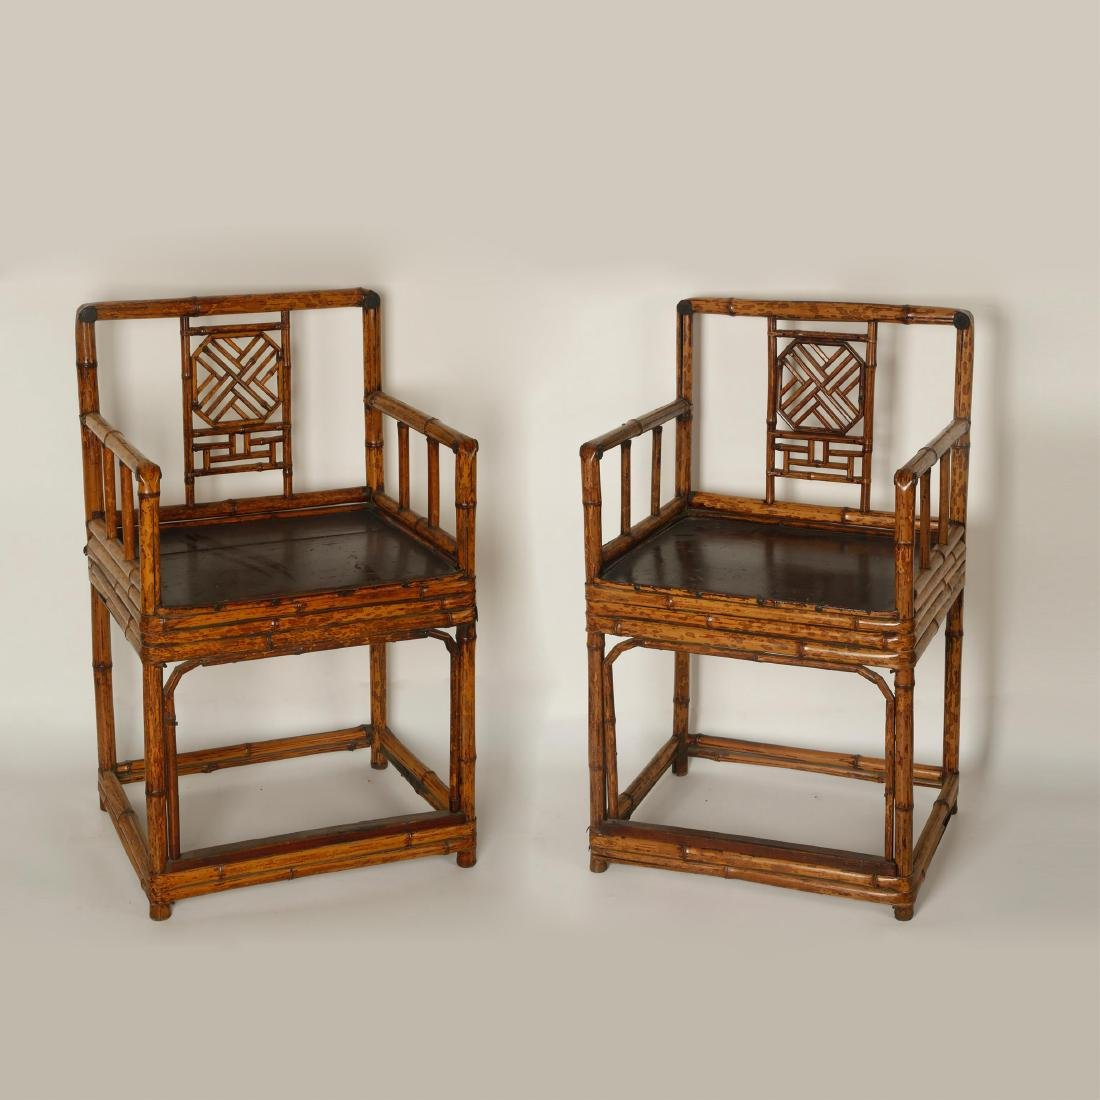 PAIR OF CHINESE BAMBOO ARMED CHAIRS, QING DYNASTY